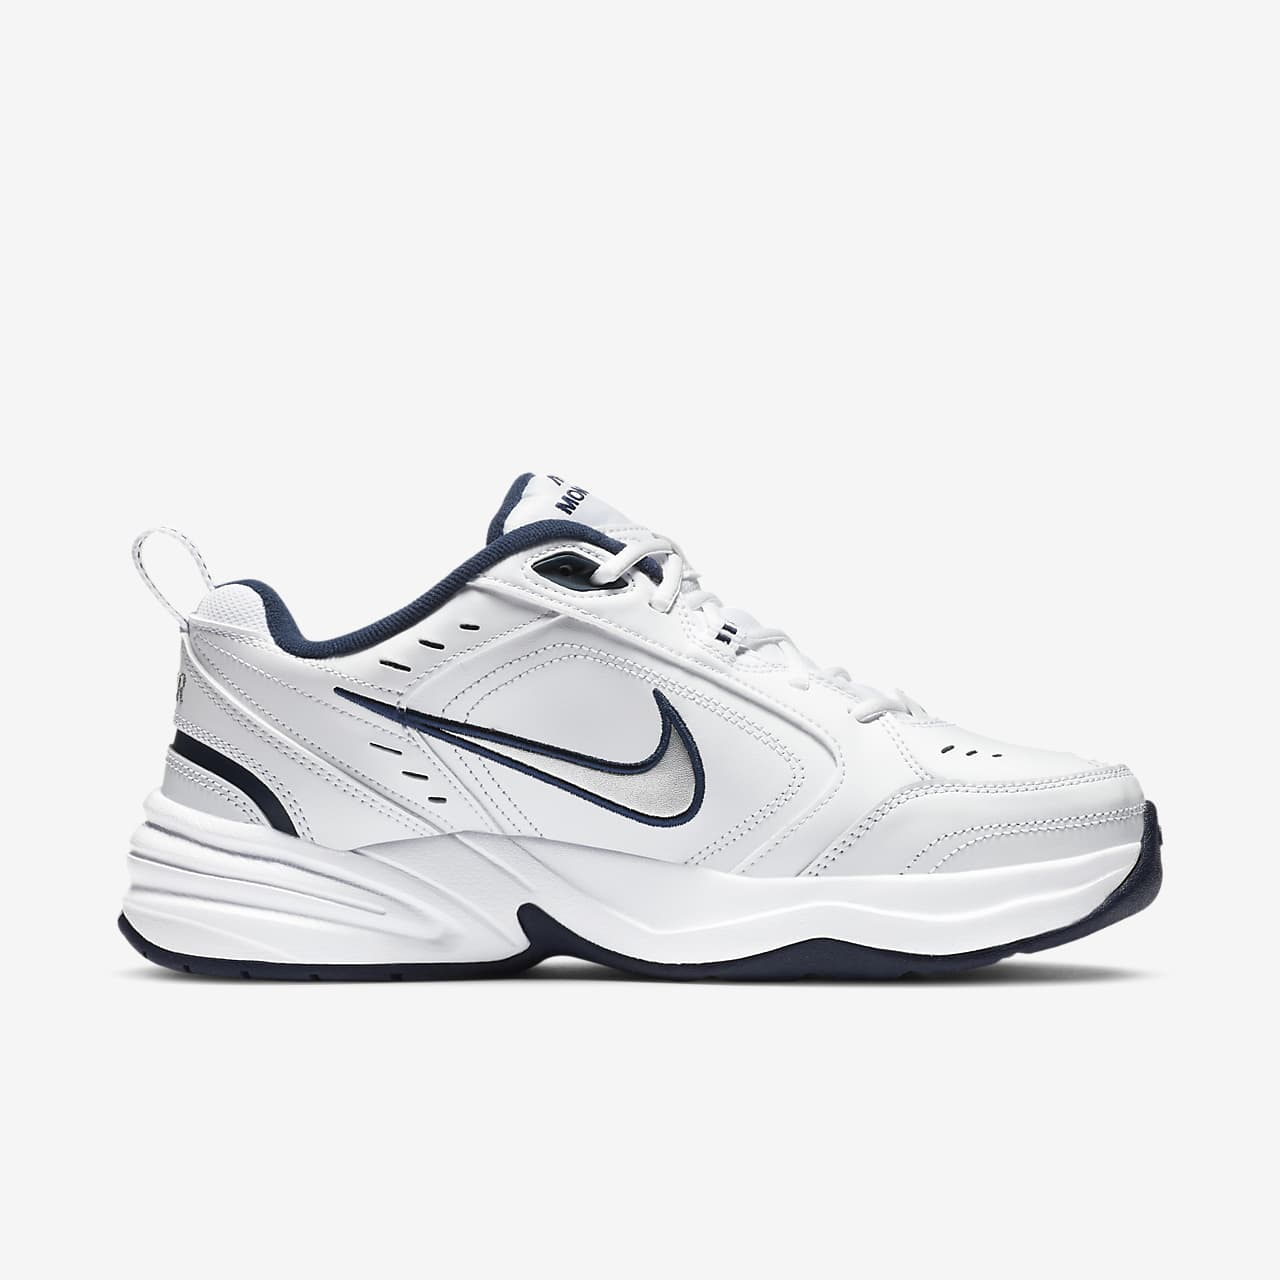 1b3be199af07 Nike Air Monarch IV Lifestyle Gym Shoe. Nike.com LU